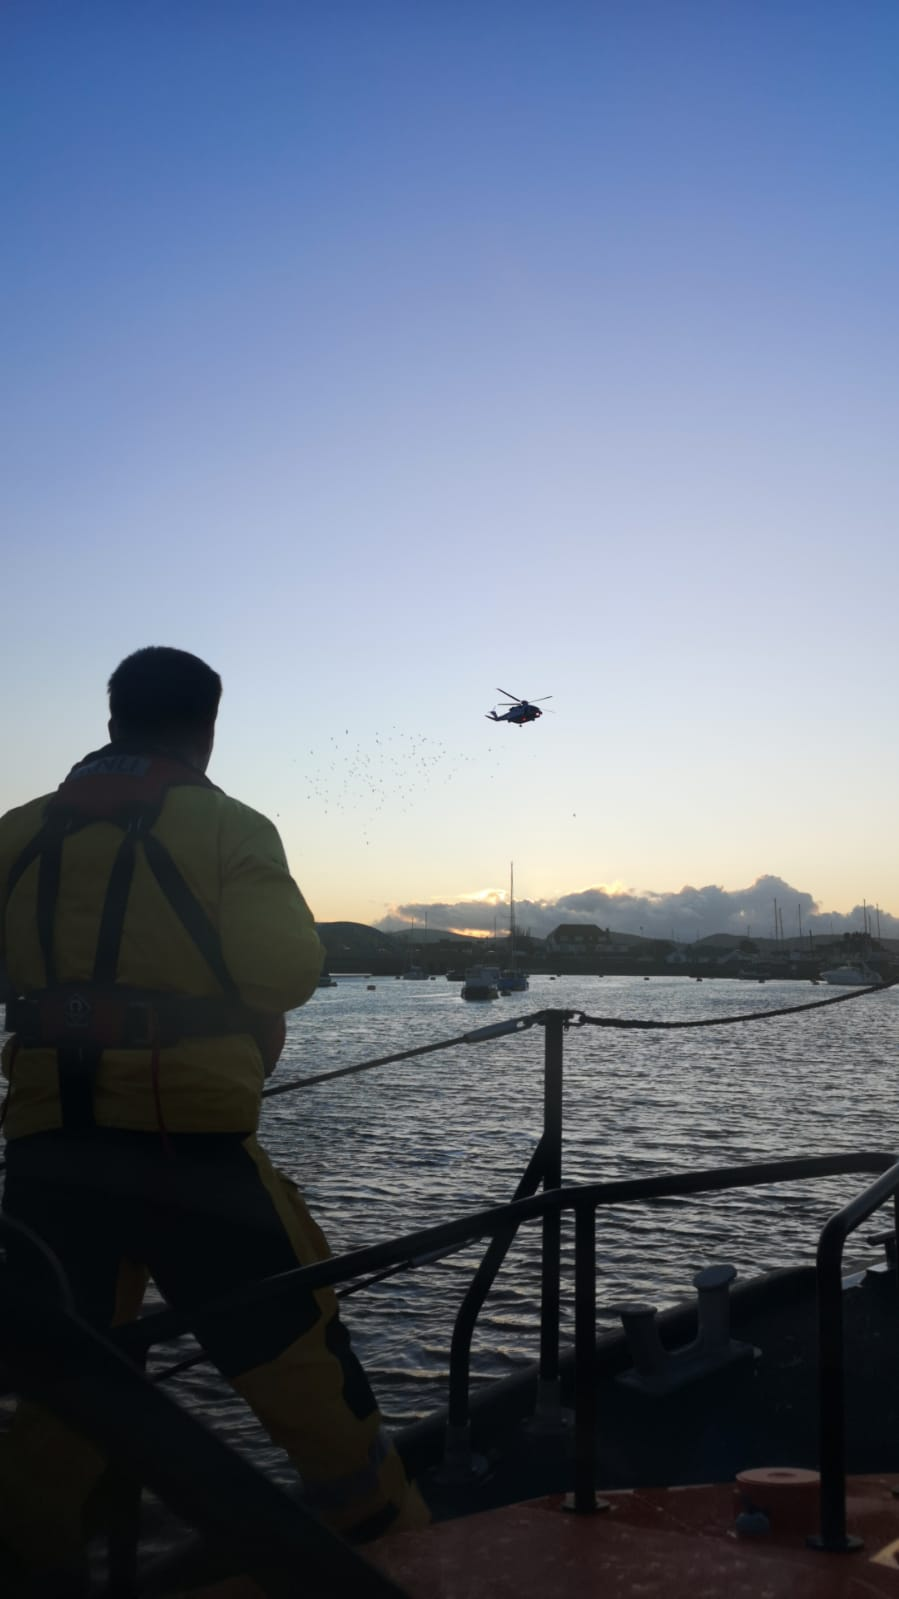 crew searching for missing person in harbour